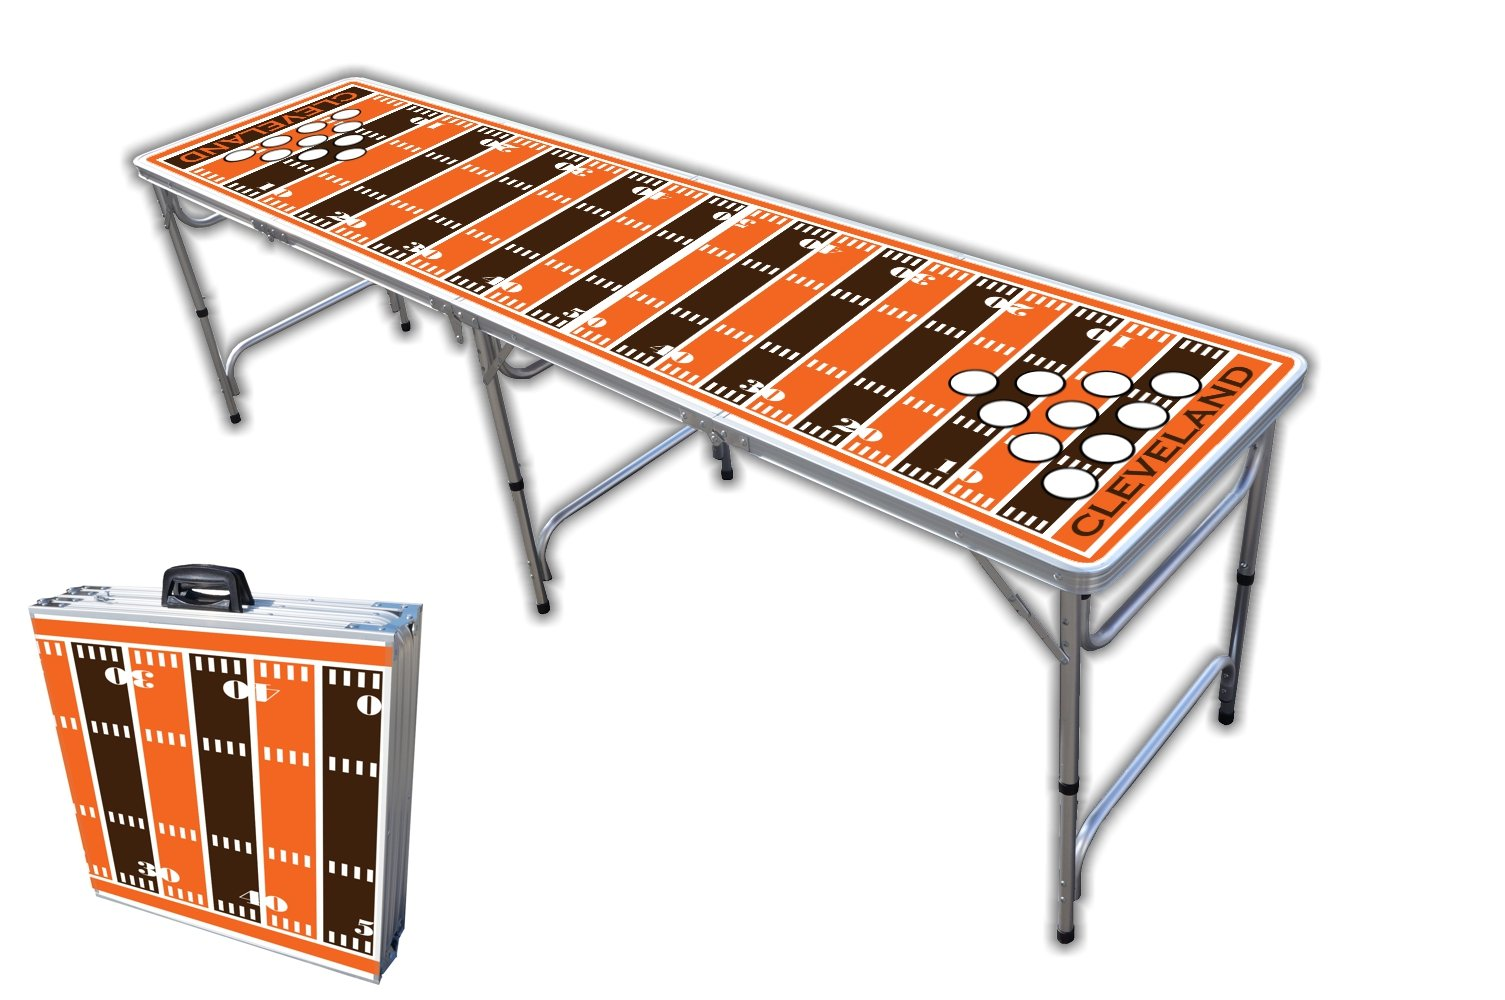 8-Foot Professional Beer Pong Table w/Holes - Cleveland Football Field Graphic by PartyPongTables.com